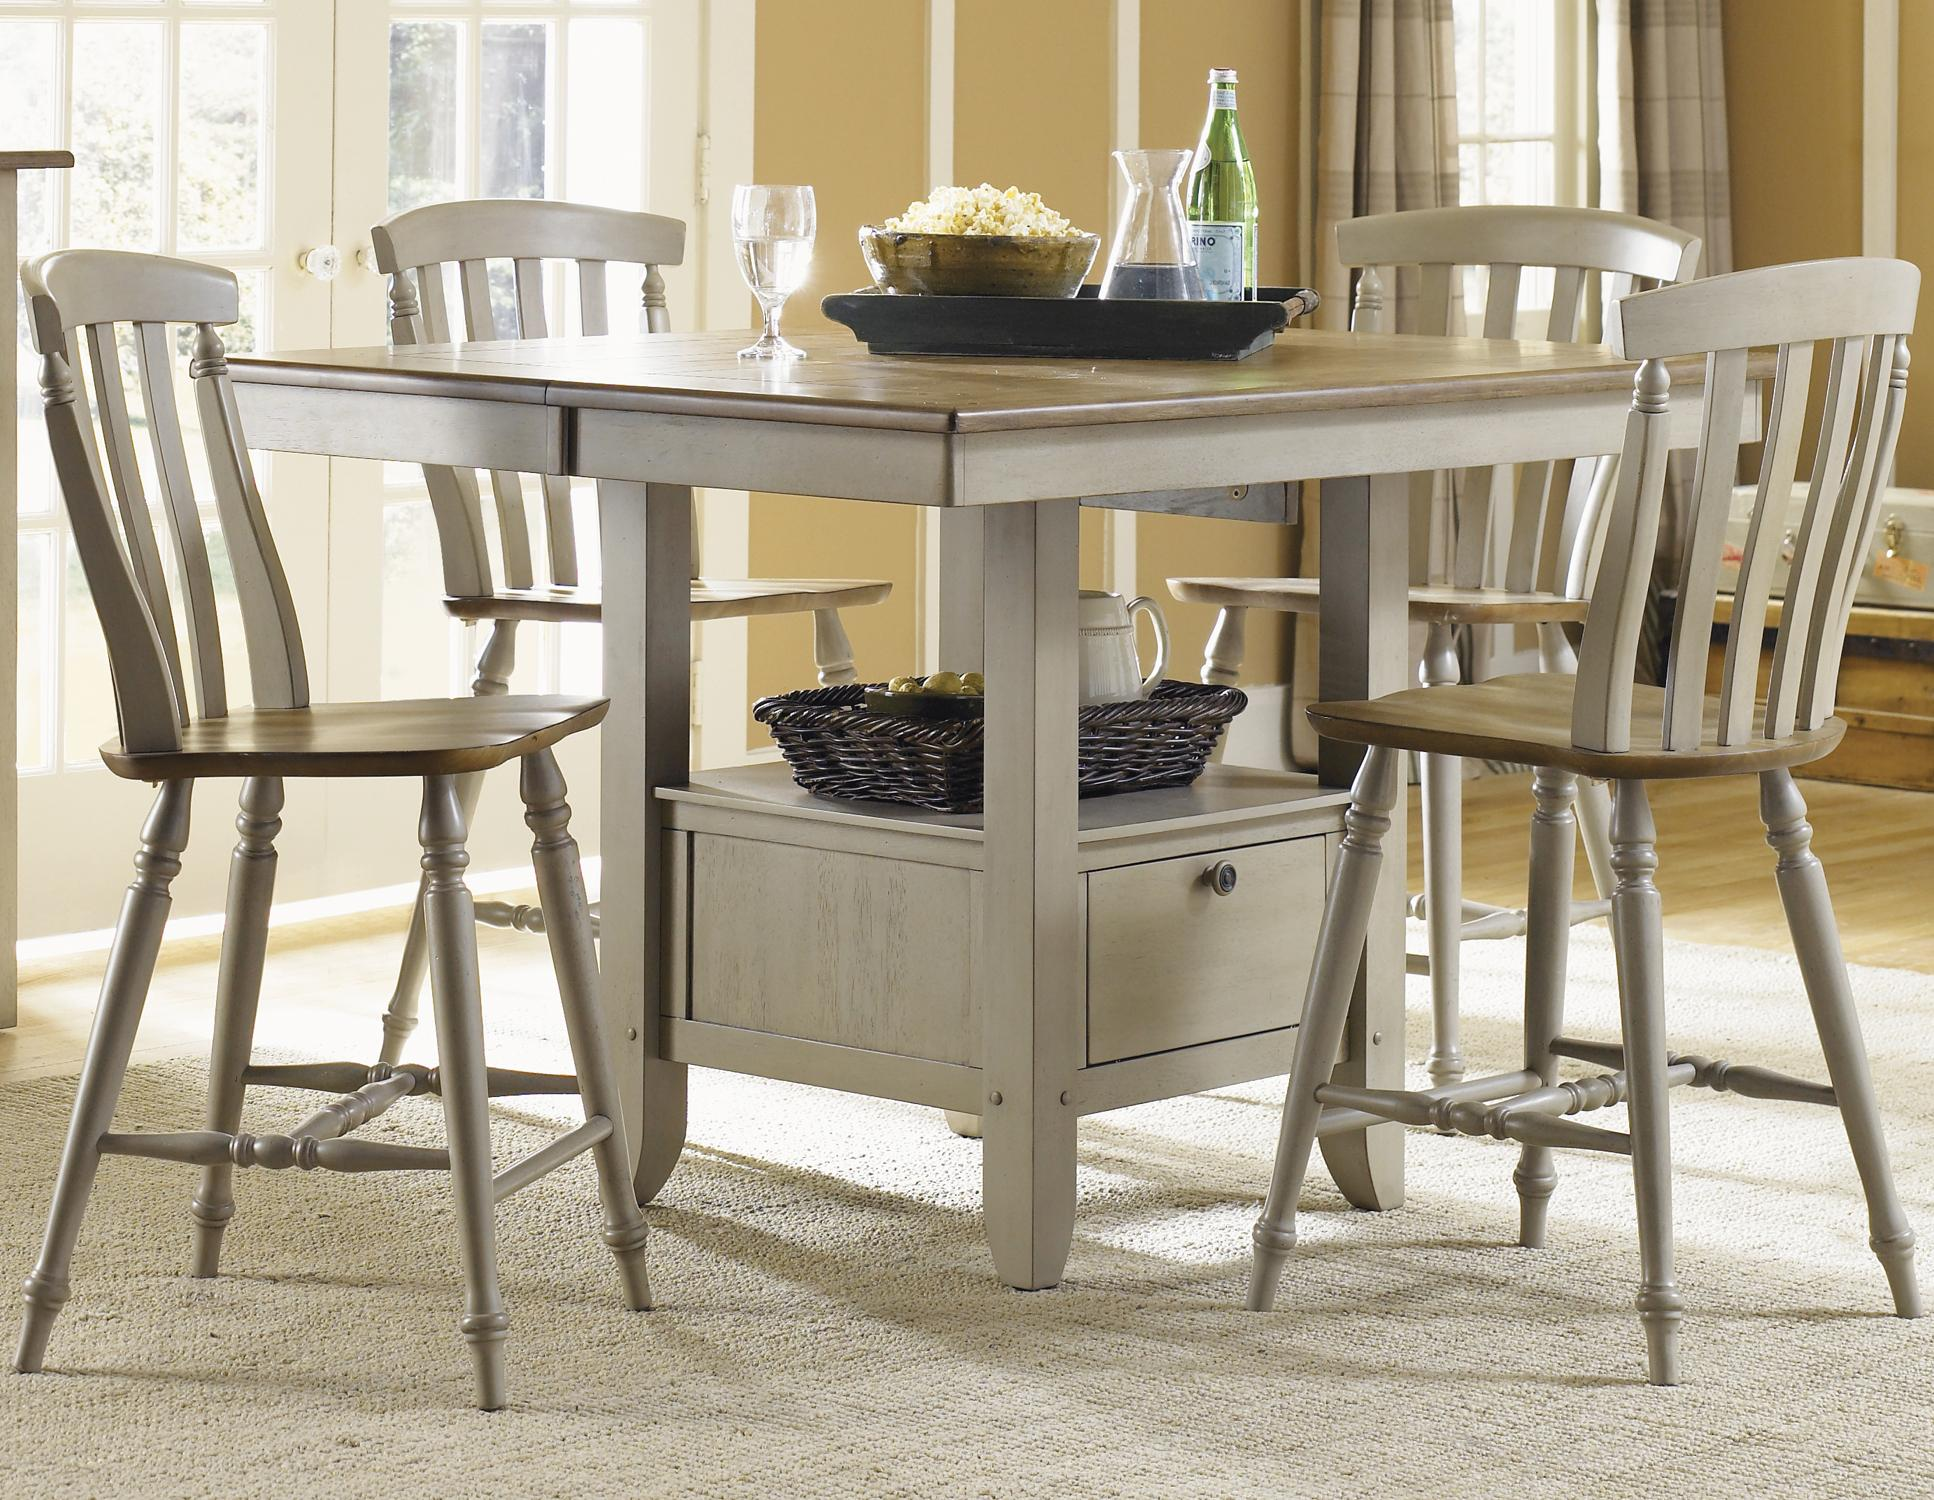 Al Fresco 5 Piece Gathering Table and Chairs Set by Liberty Furniture at Lapeer Furniture & Mattress Center